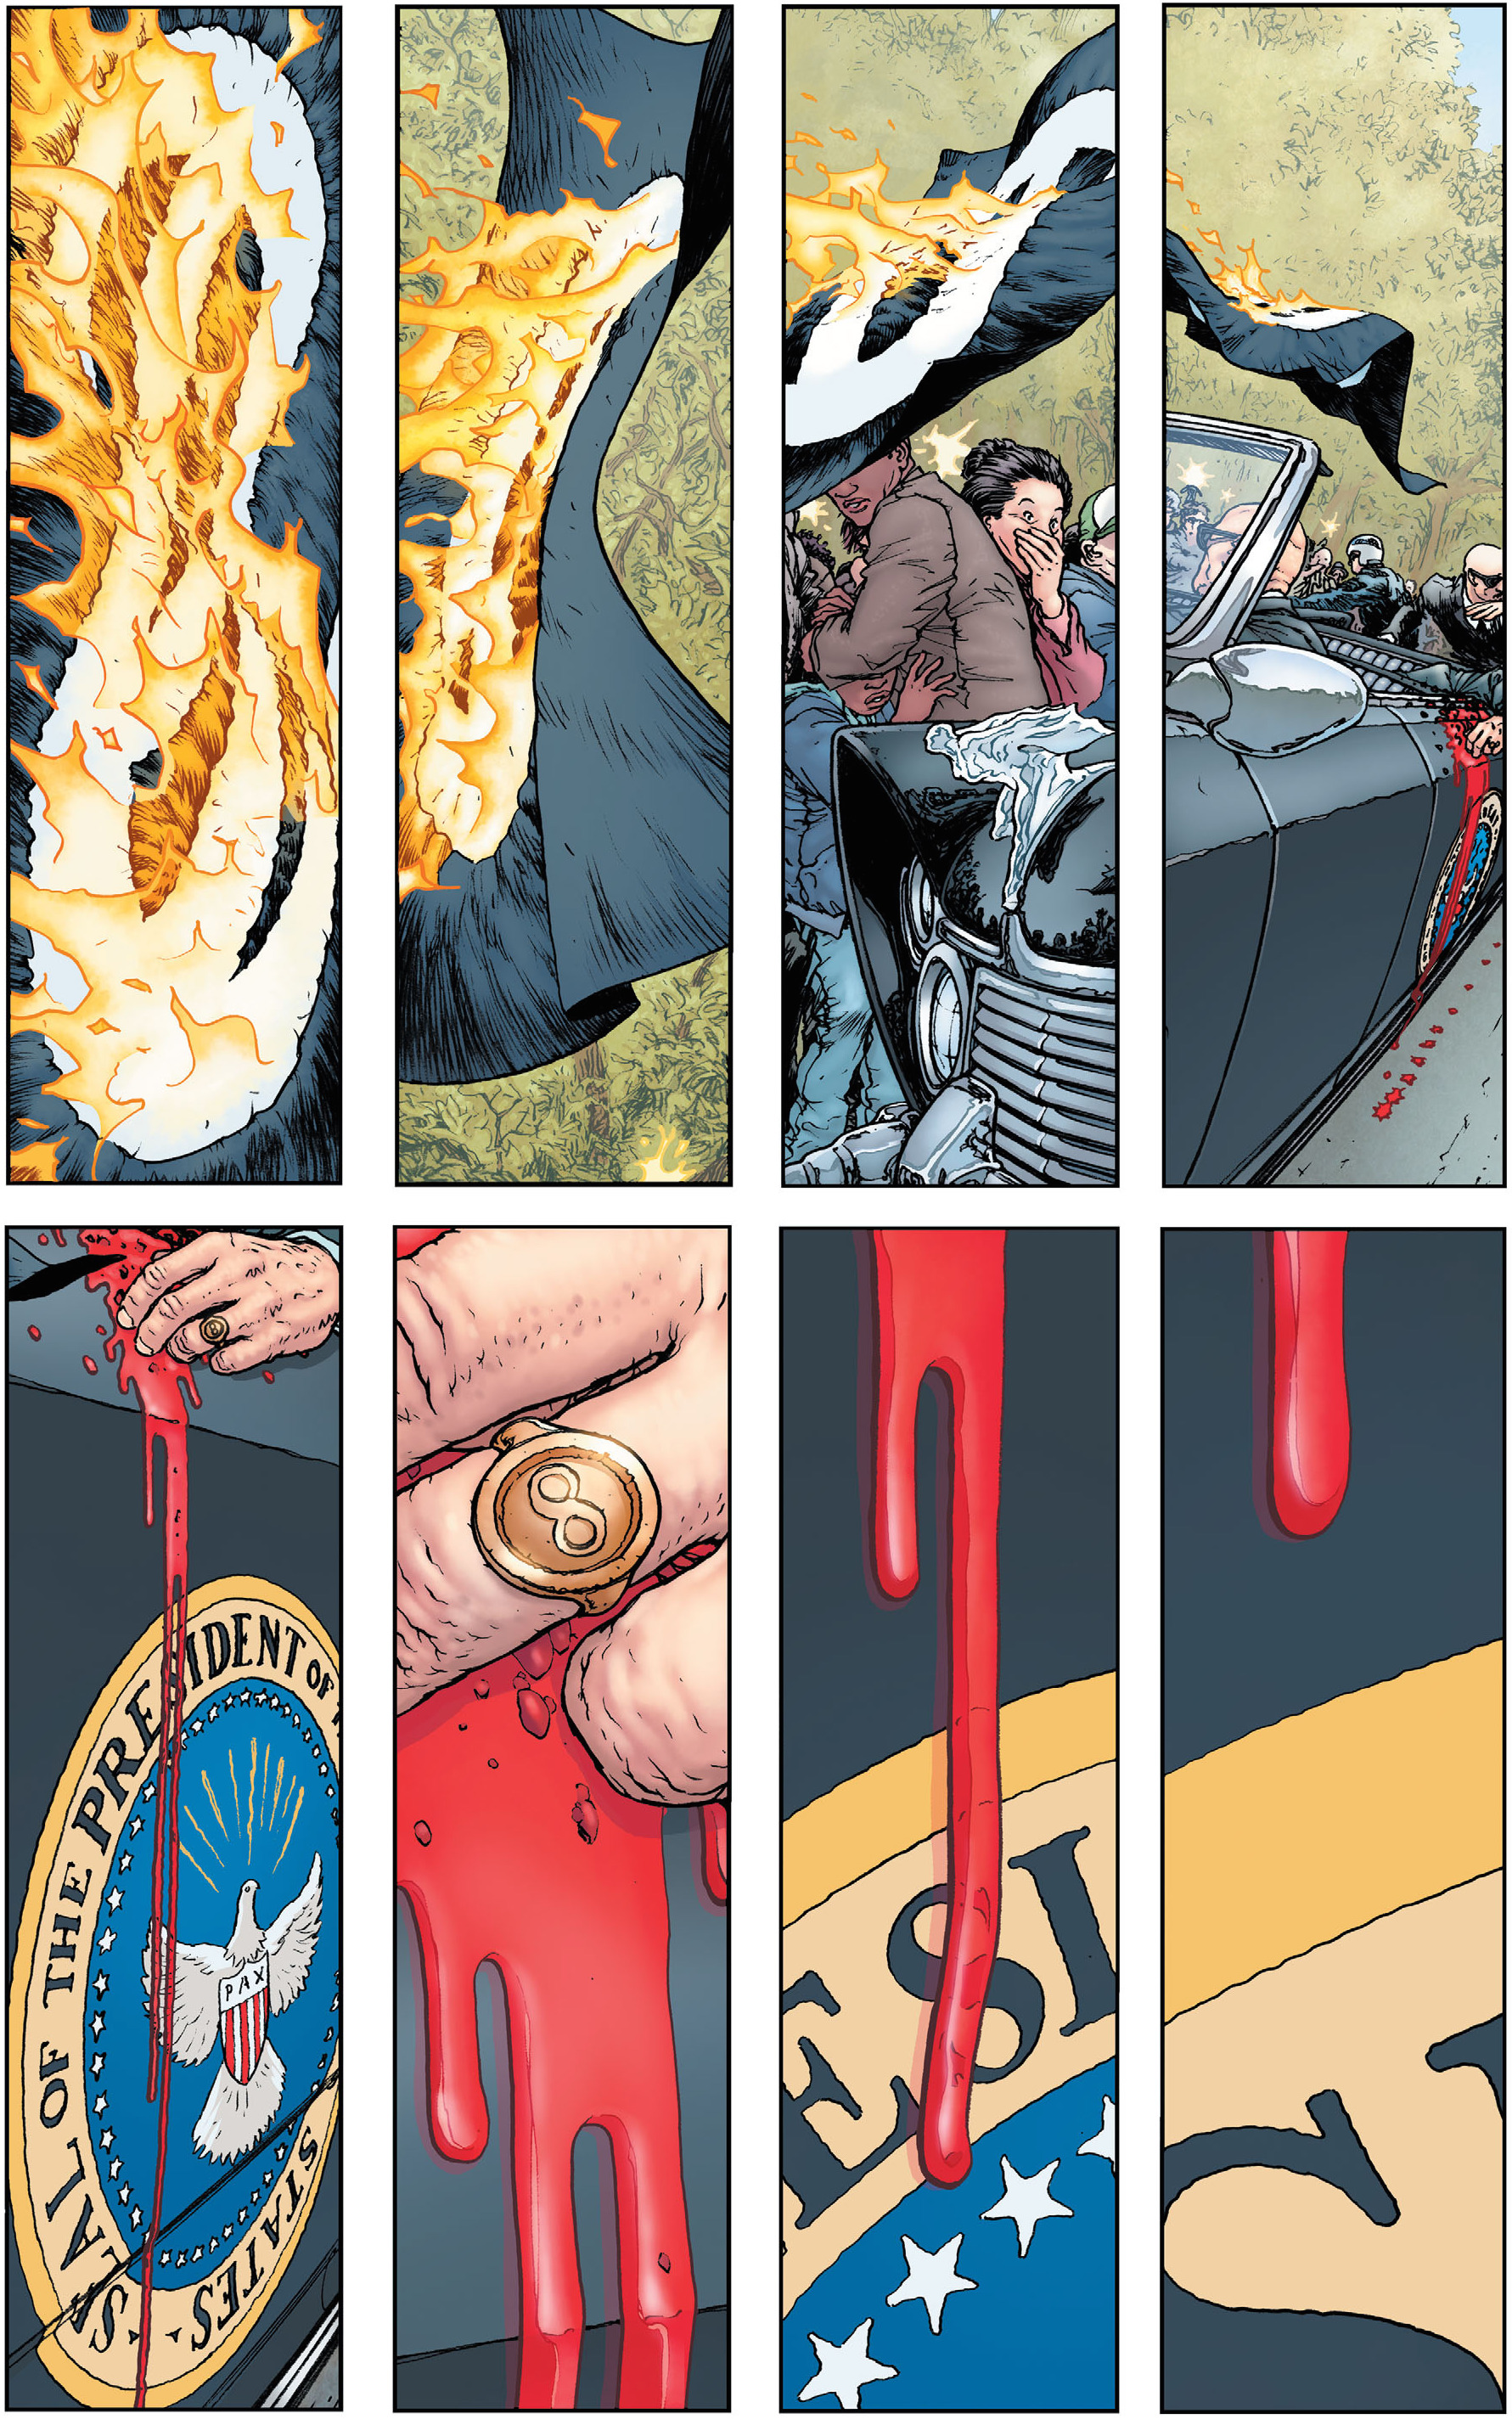 Figure 885: The eight panel grid and recurrent figure eight motif in Pax Americana. (Written by Grant Morrison, art by Frank Quitely and Nathan Fairbairn, ...